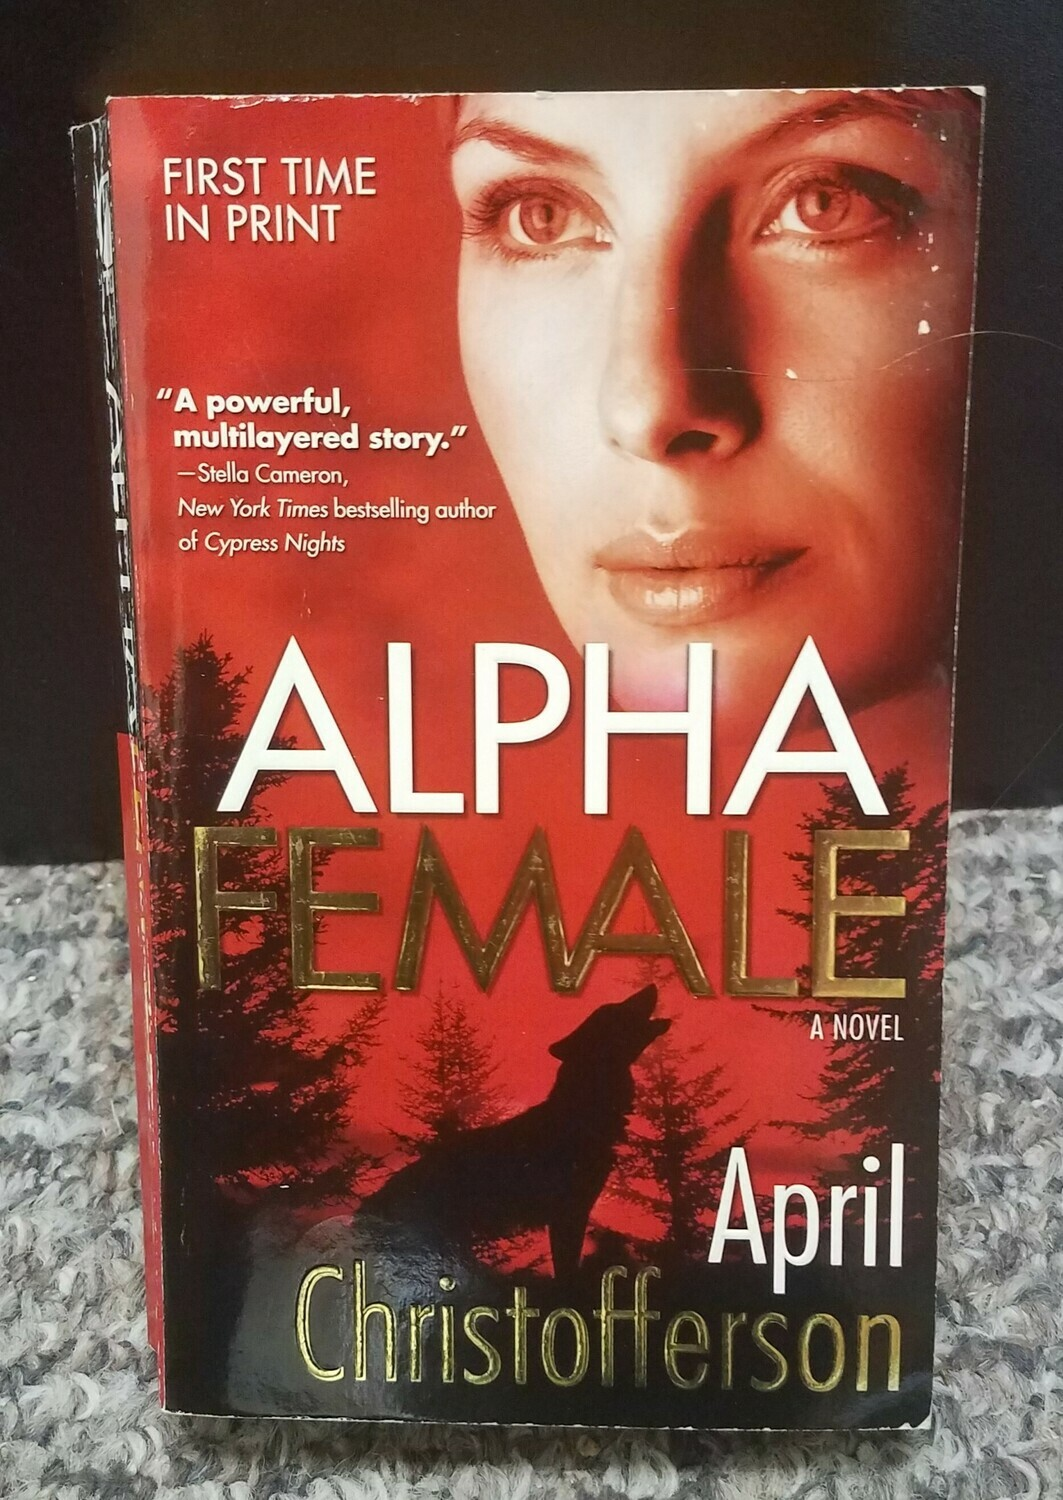 Alpha Female by April Christofferson